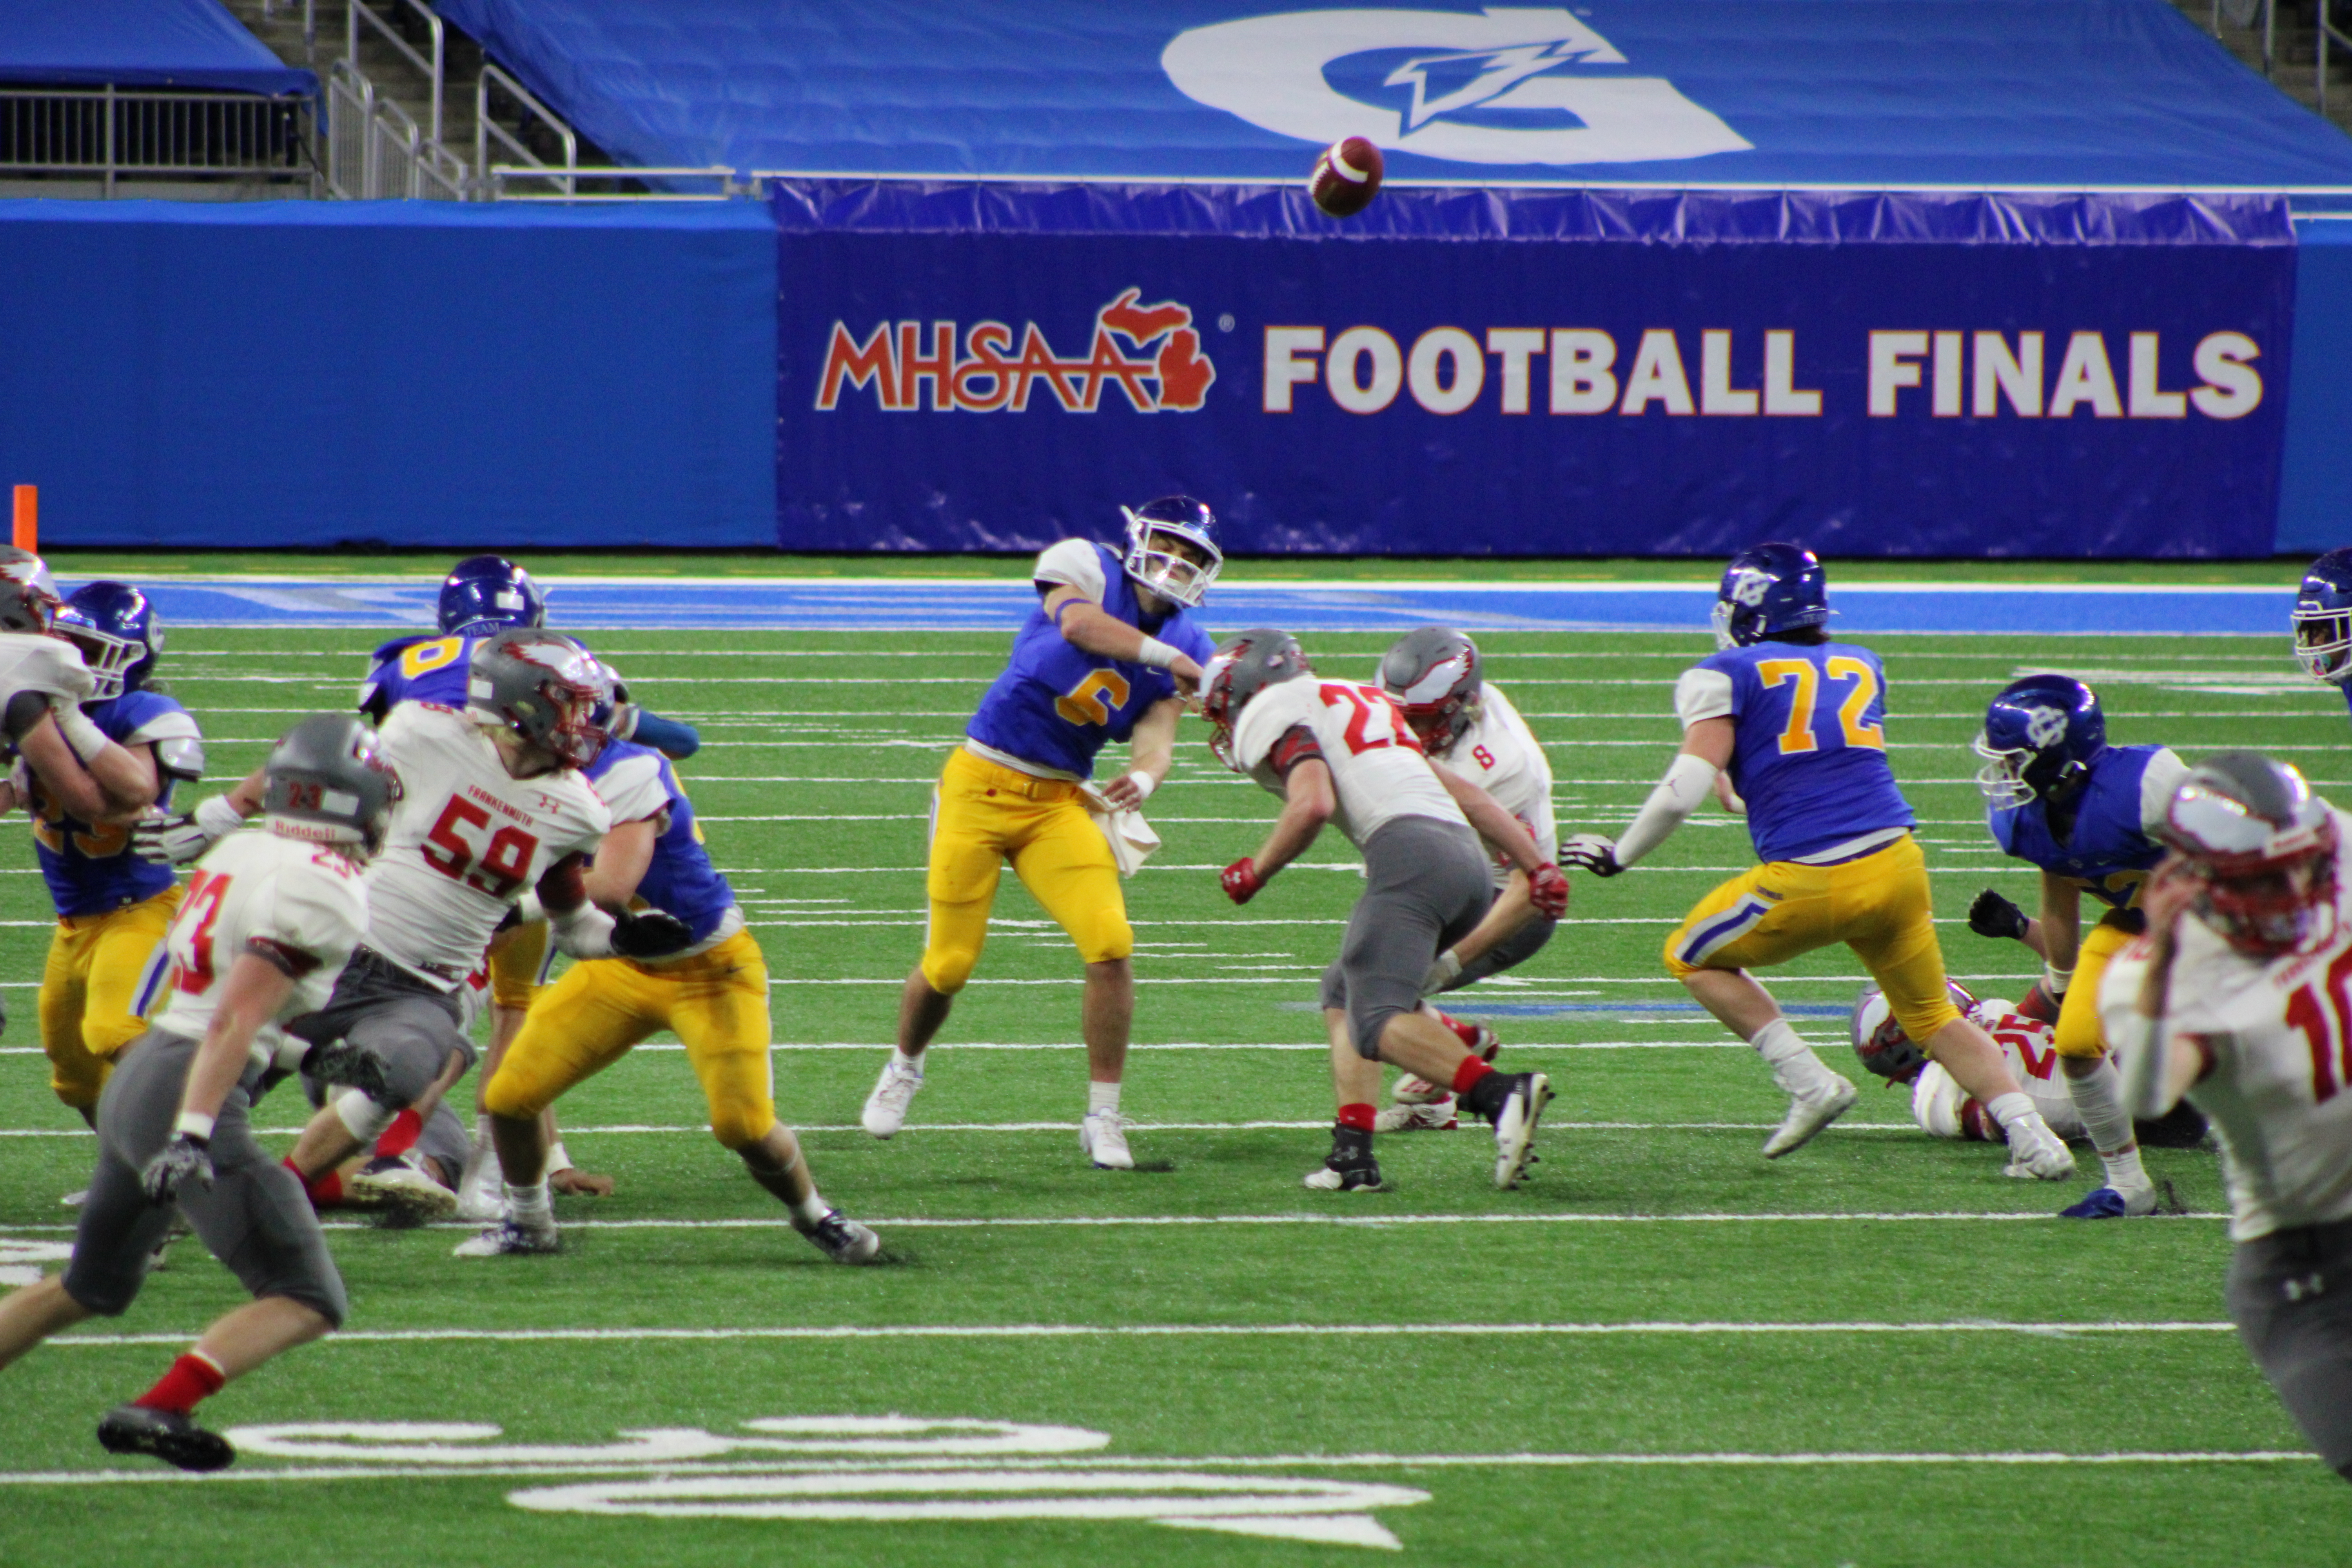 Grand Rapids Catholic Central battlesFrankenmuth for the Division 5 title at Ford Field on Jan. 23, 2021.